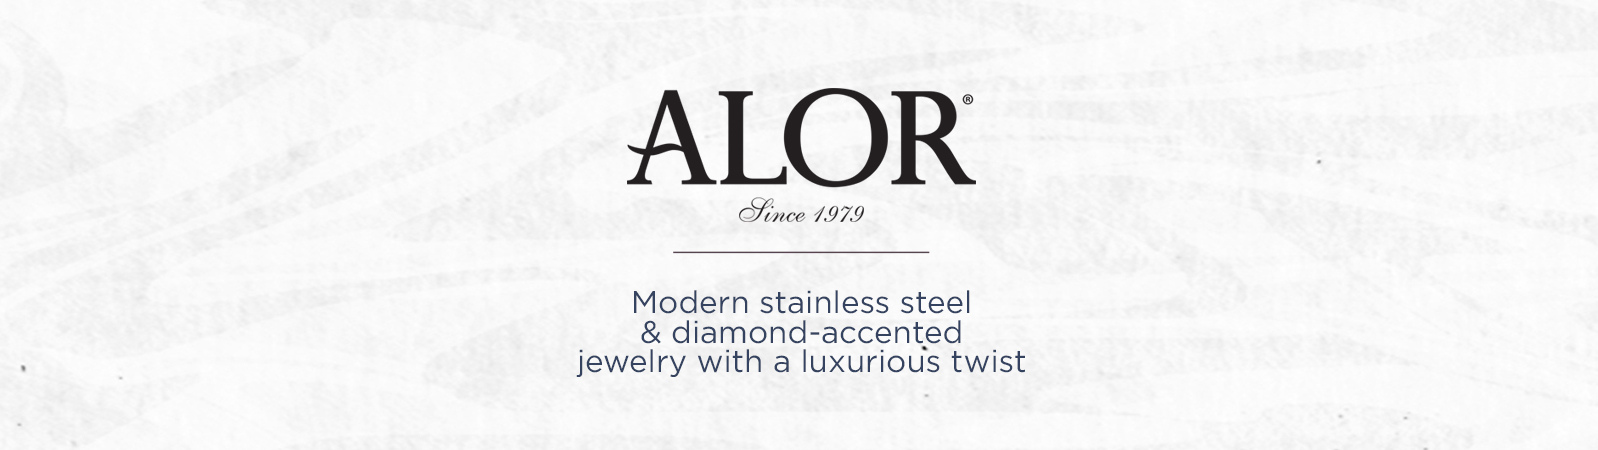 ALOR. Modern stainless steel & diamond-accented jewelry with a luxurious twist.